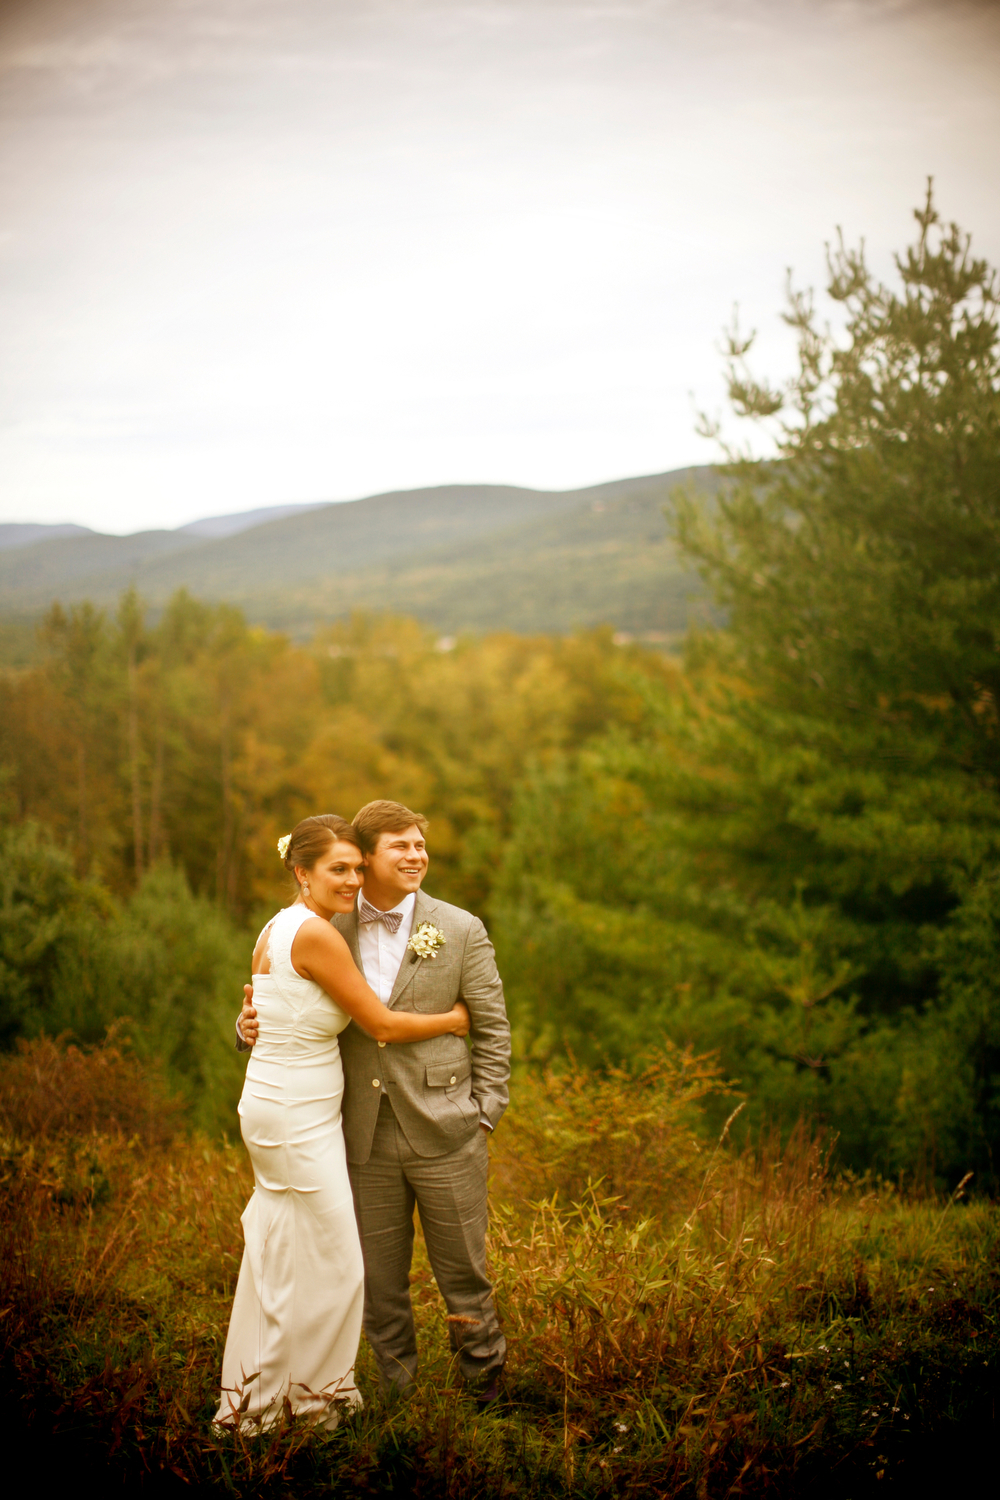 Heather + Ryan_Betsi Ewing Studio_050.JPG